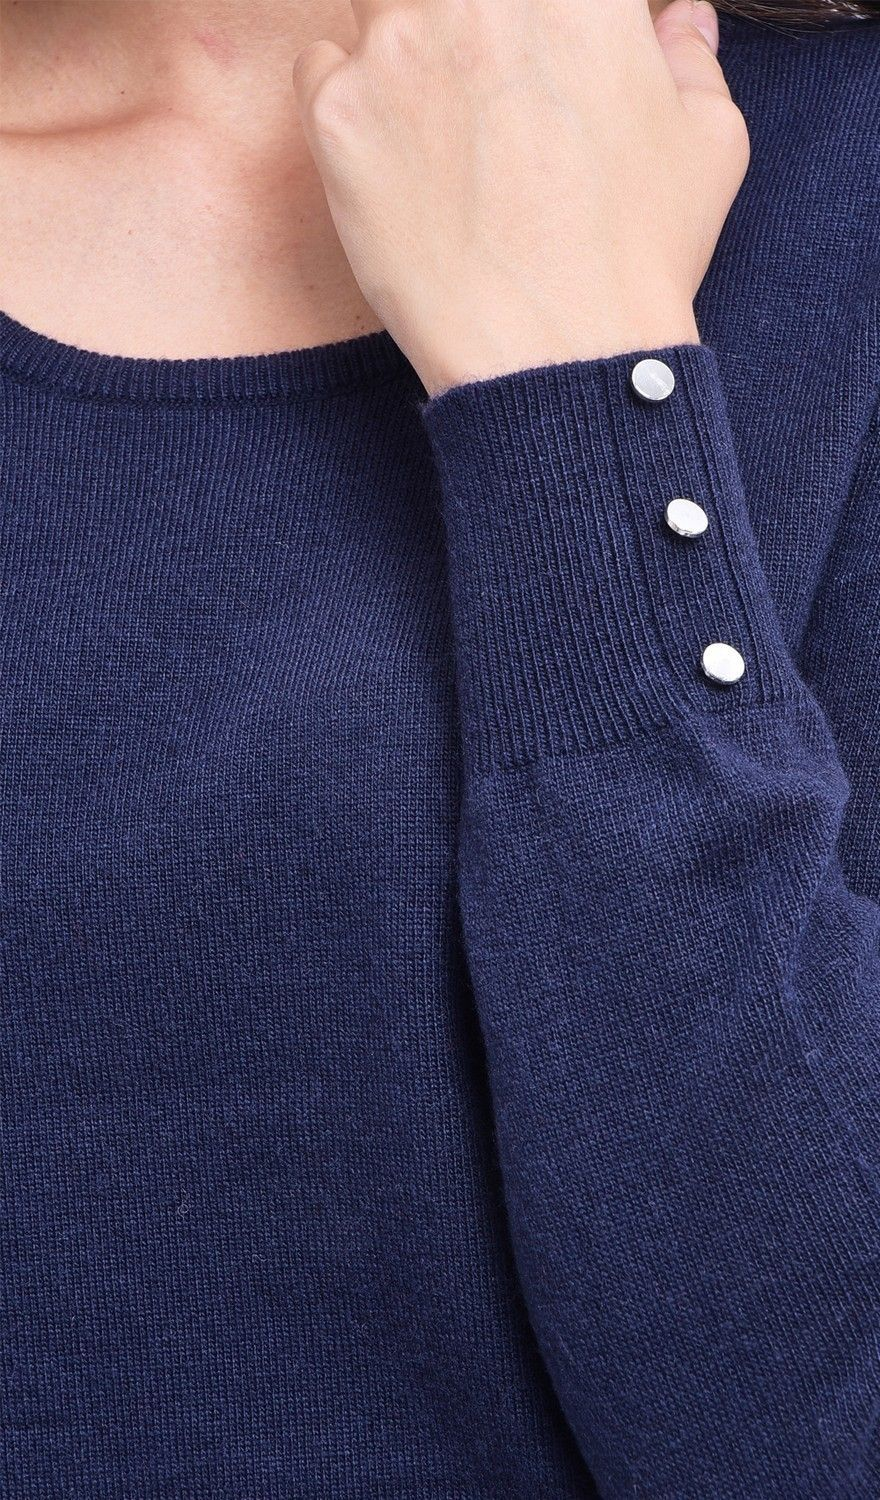 C&JO Round Neck Sweater with Buttoned Sleeves in Navy